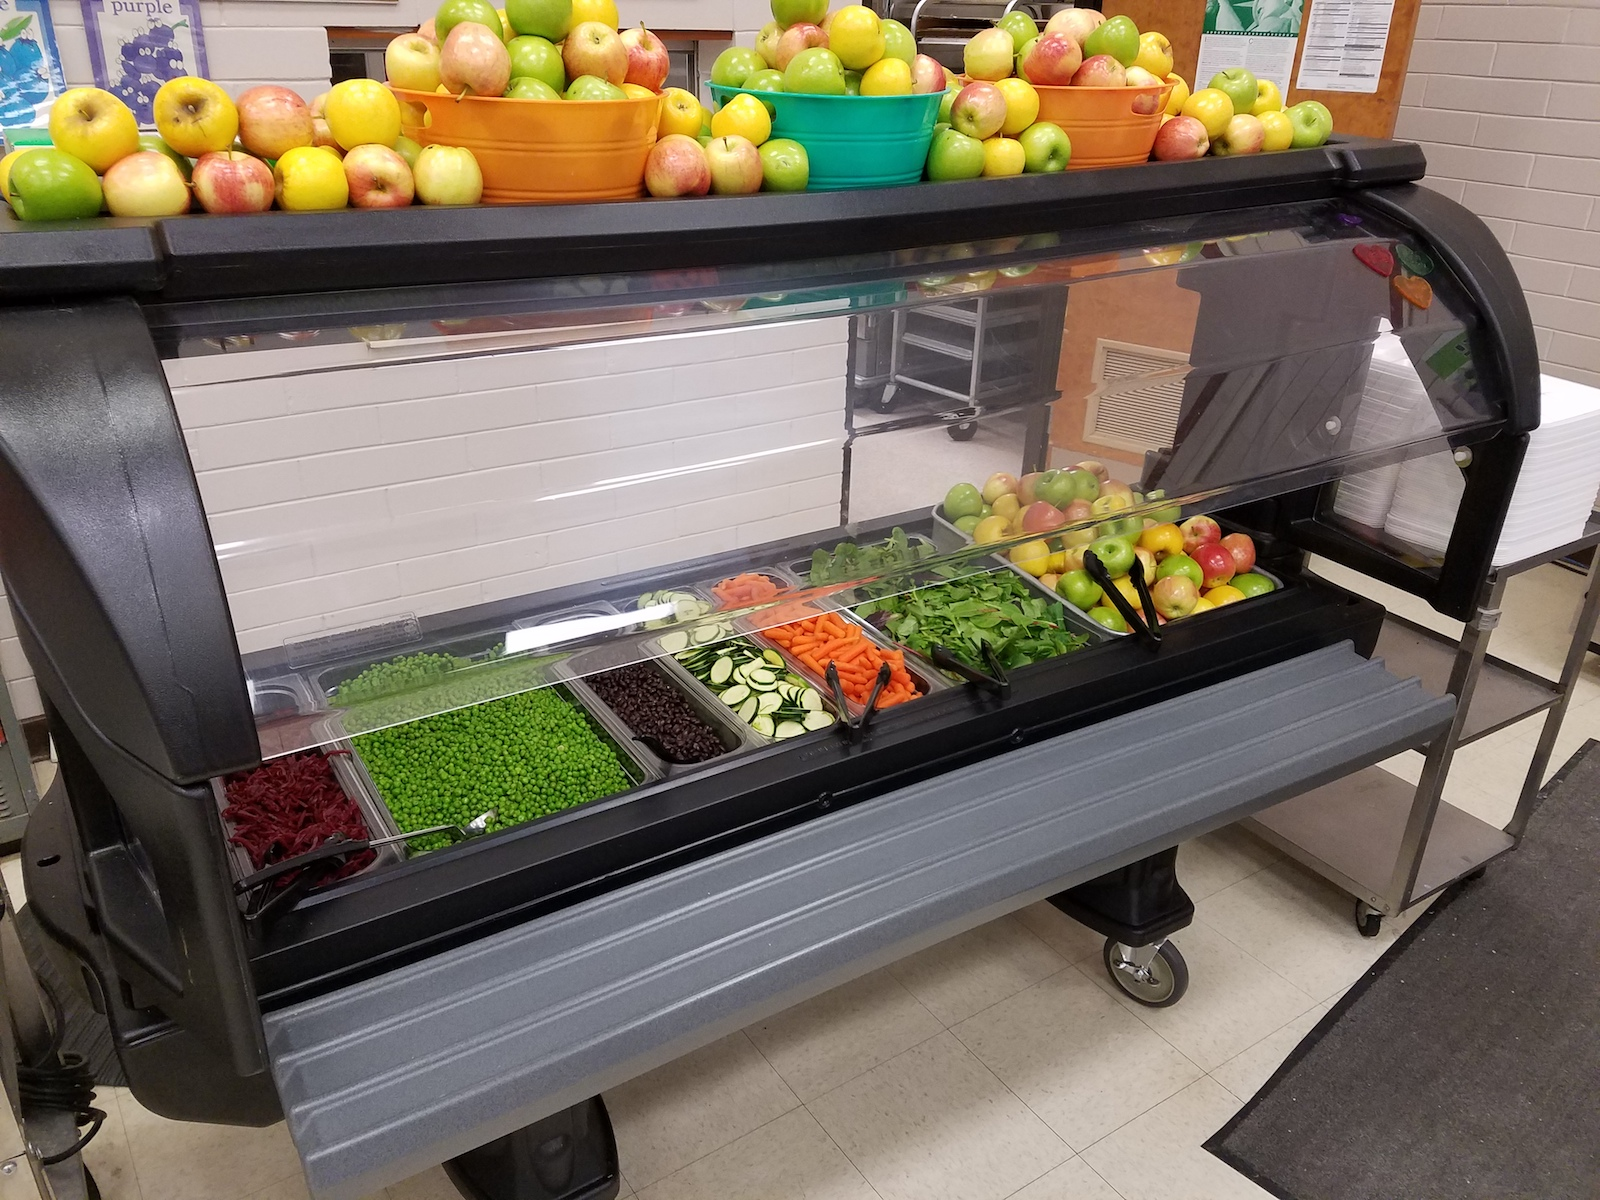 Ellensburg School District Salad Bar